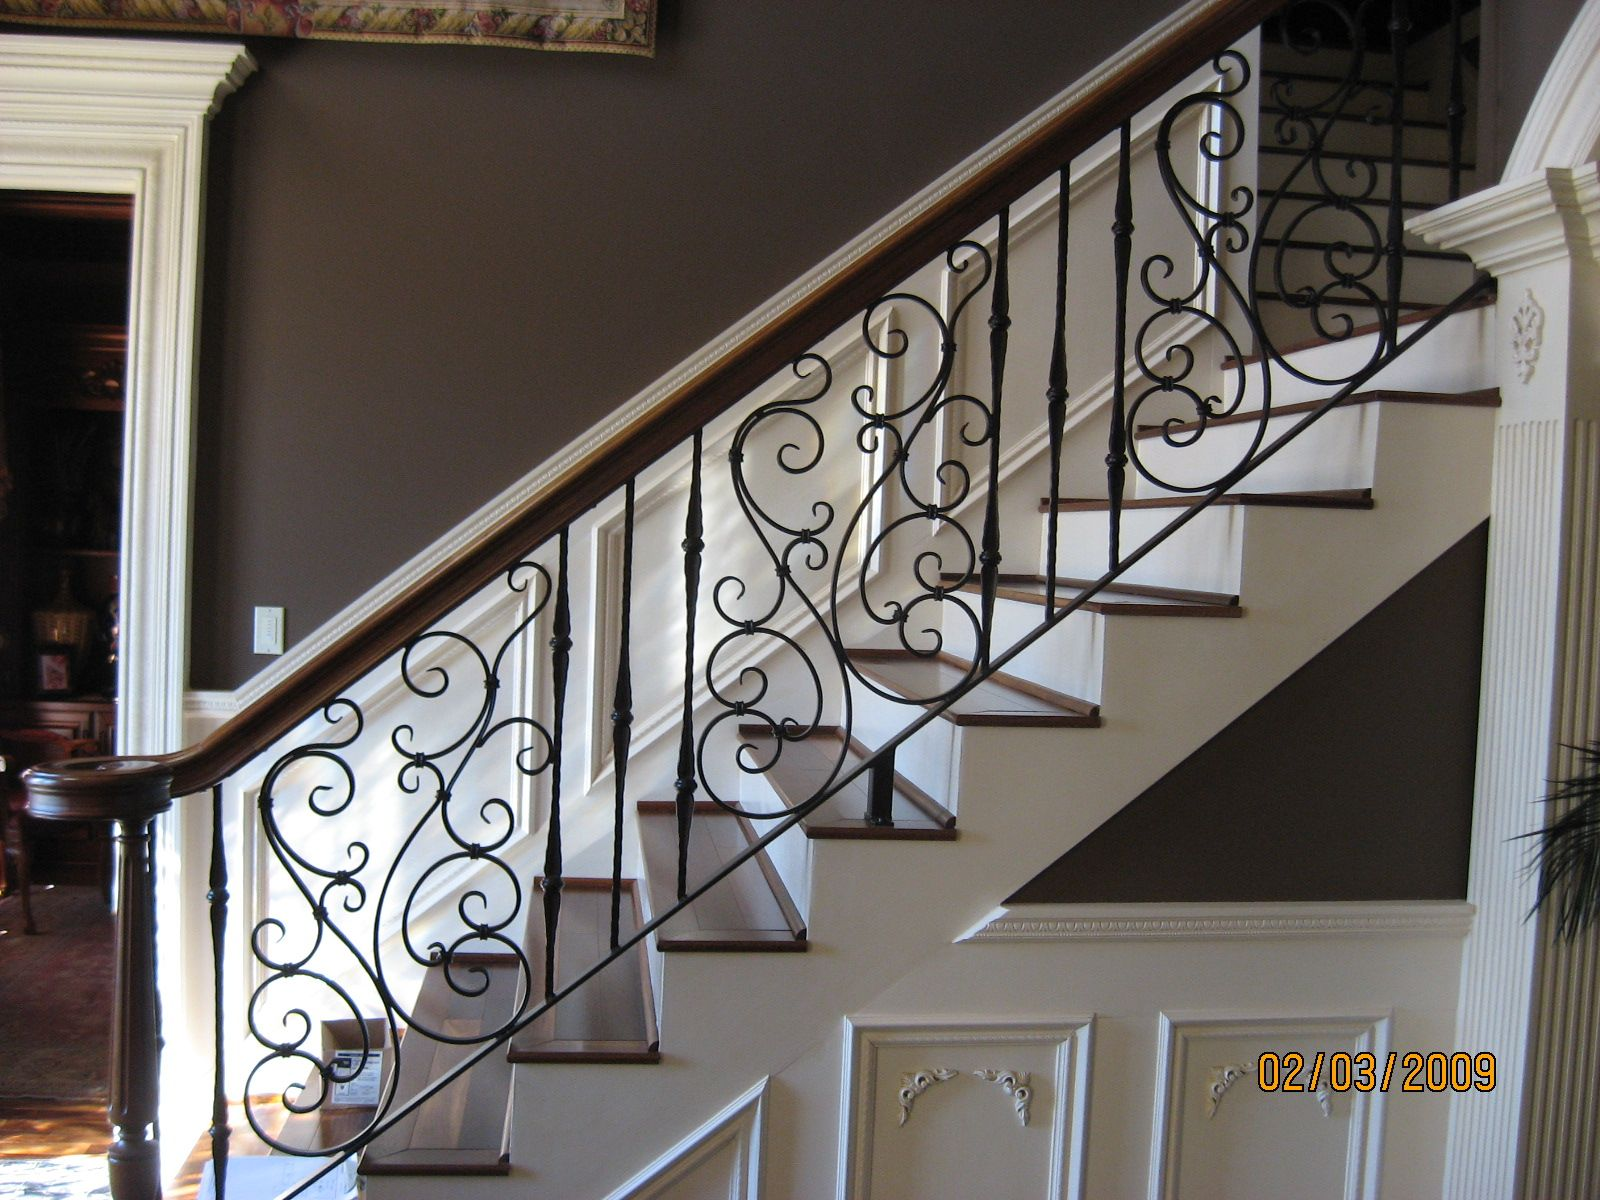 Wrought Iron Staircase Designs Pretty Swirly Wrought Iron Stair Railing For The Home